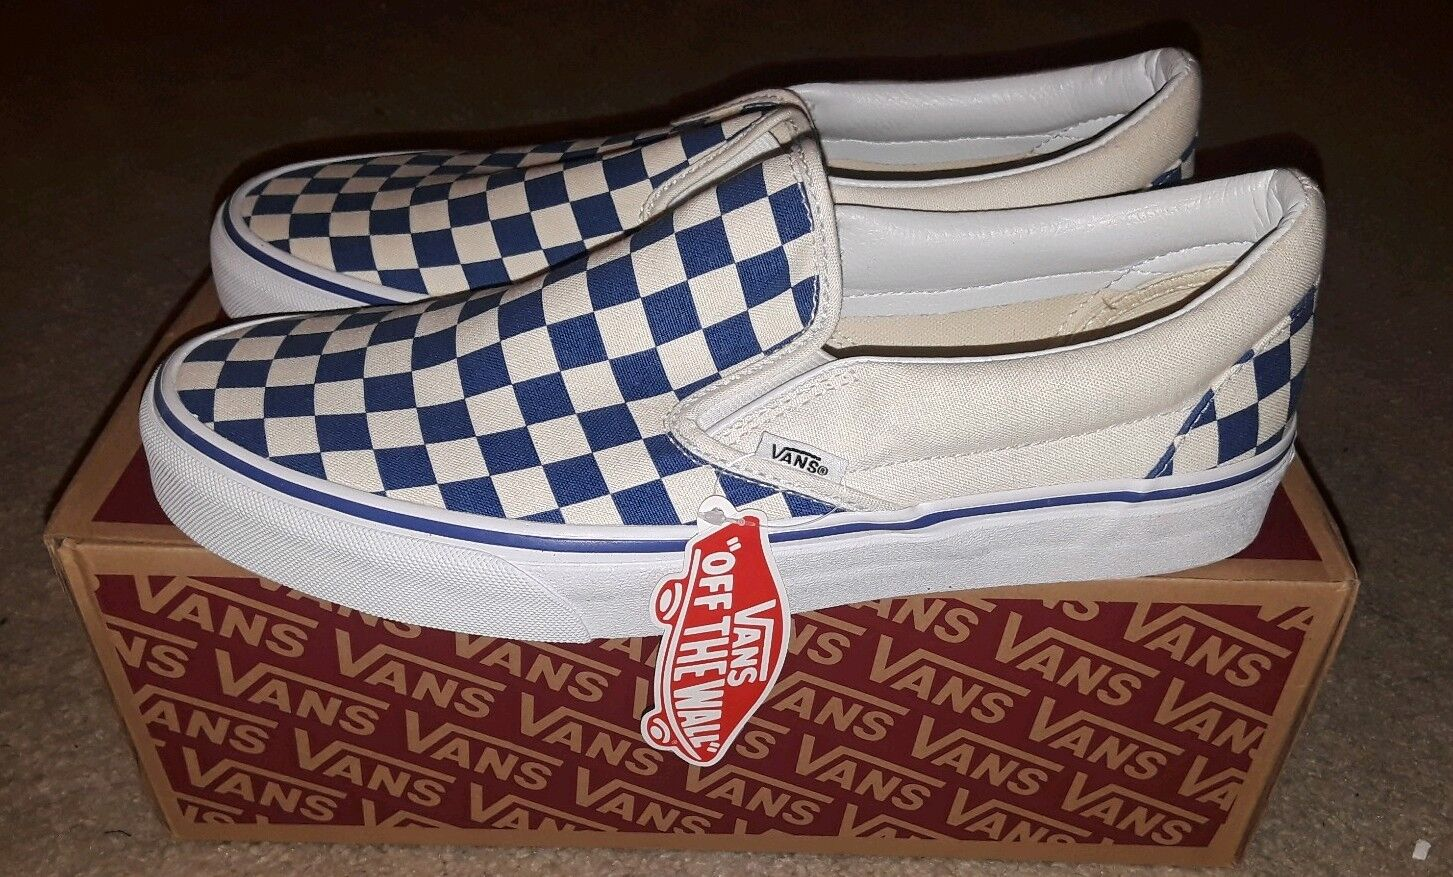 Uomo VANS Classic Slip On Checkered Shoes True Blue White 10